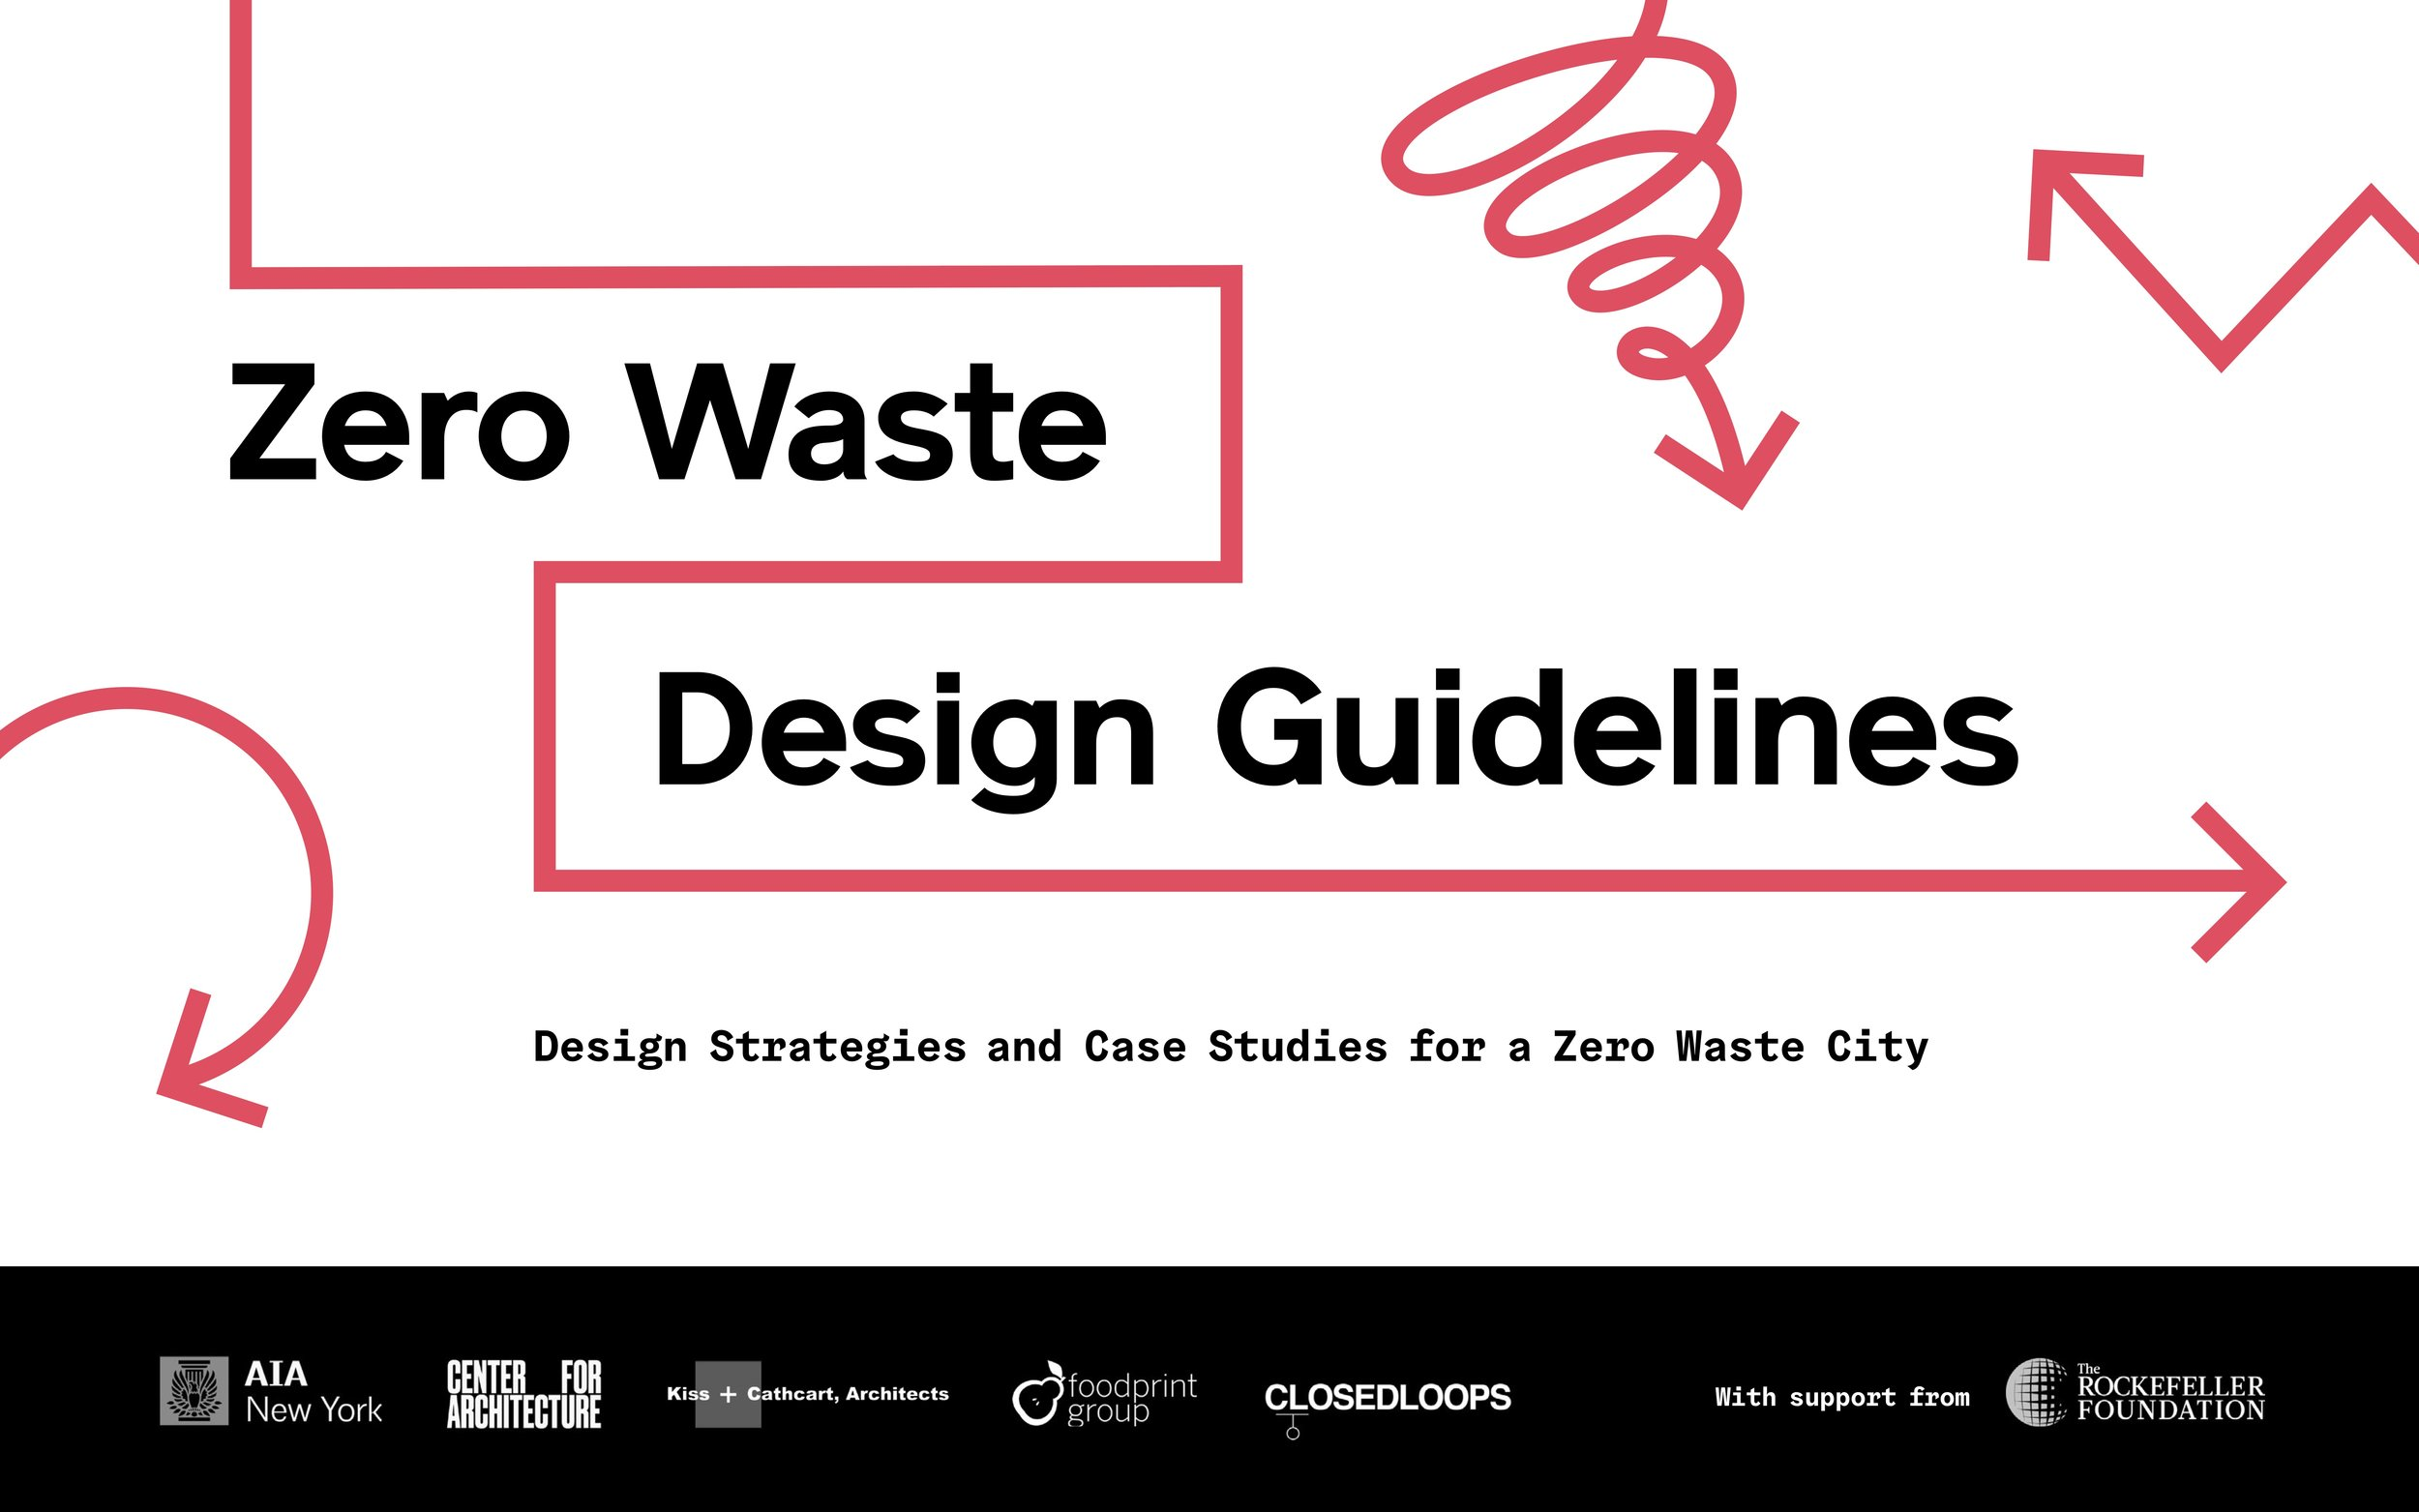 ClosedLoops co-authored the  Zero Waste Design Guidelines  with architect and project lead, Clare Miflin of  Think Woven , and Christina Grace of  Foodprint Group .   In April 2019, the Guidelines authors founded  The Center for Zero Waste Design  to adapt the strategies within the Guidelines to the context of other cities, expand the database of case studies, and develop research and policy tools for designing cities and buildings for zero waste.